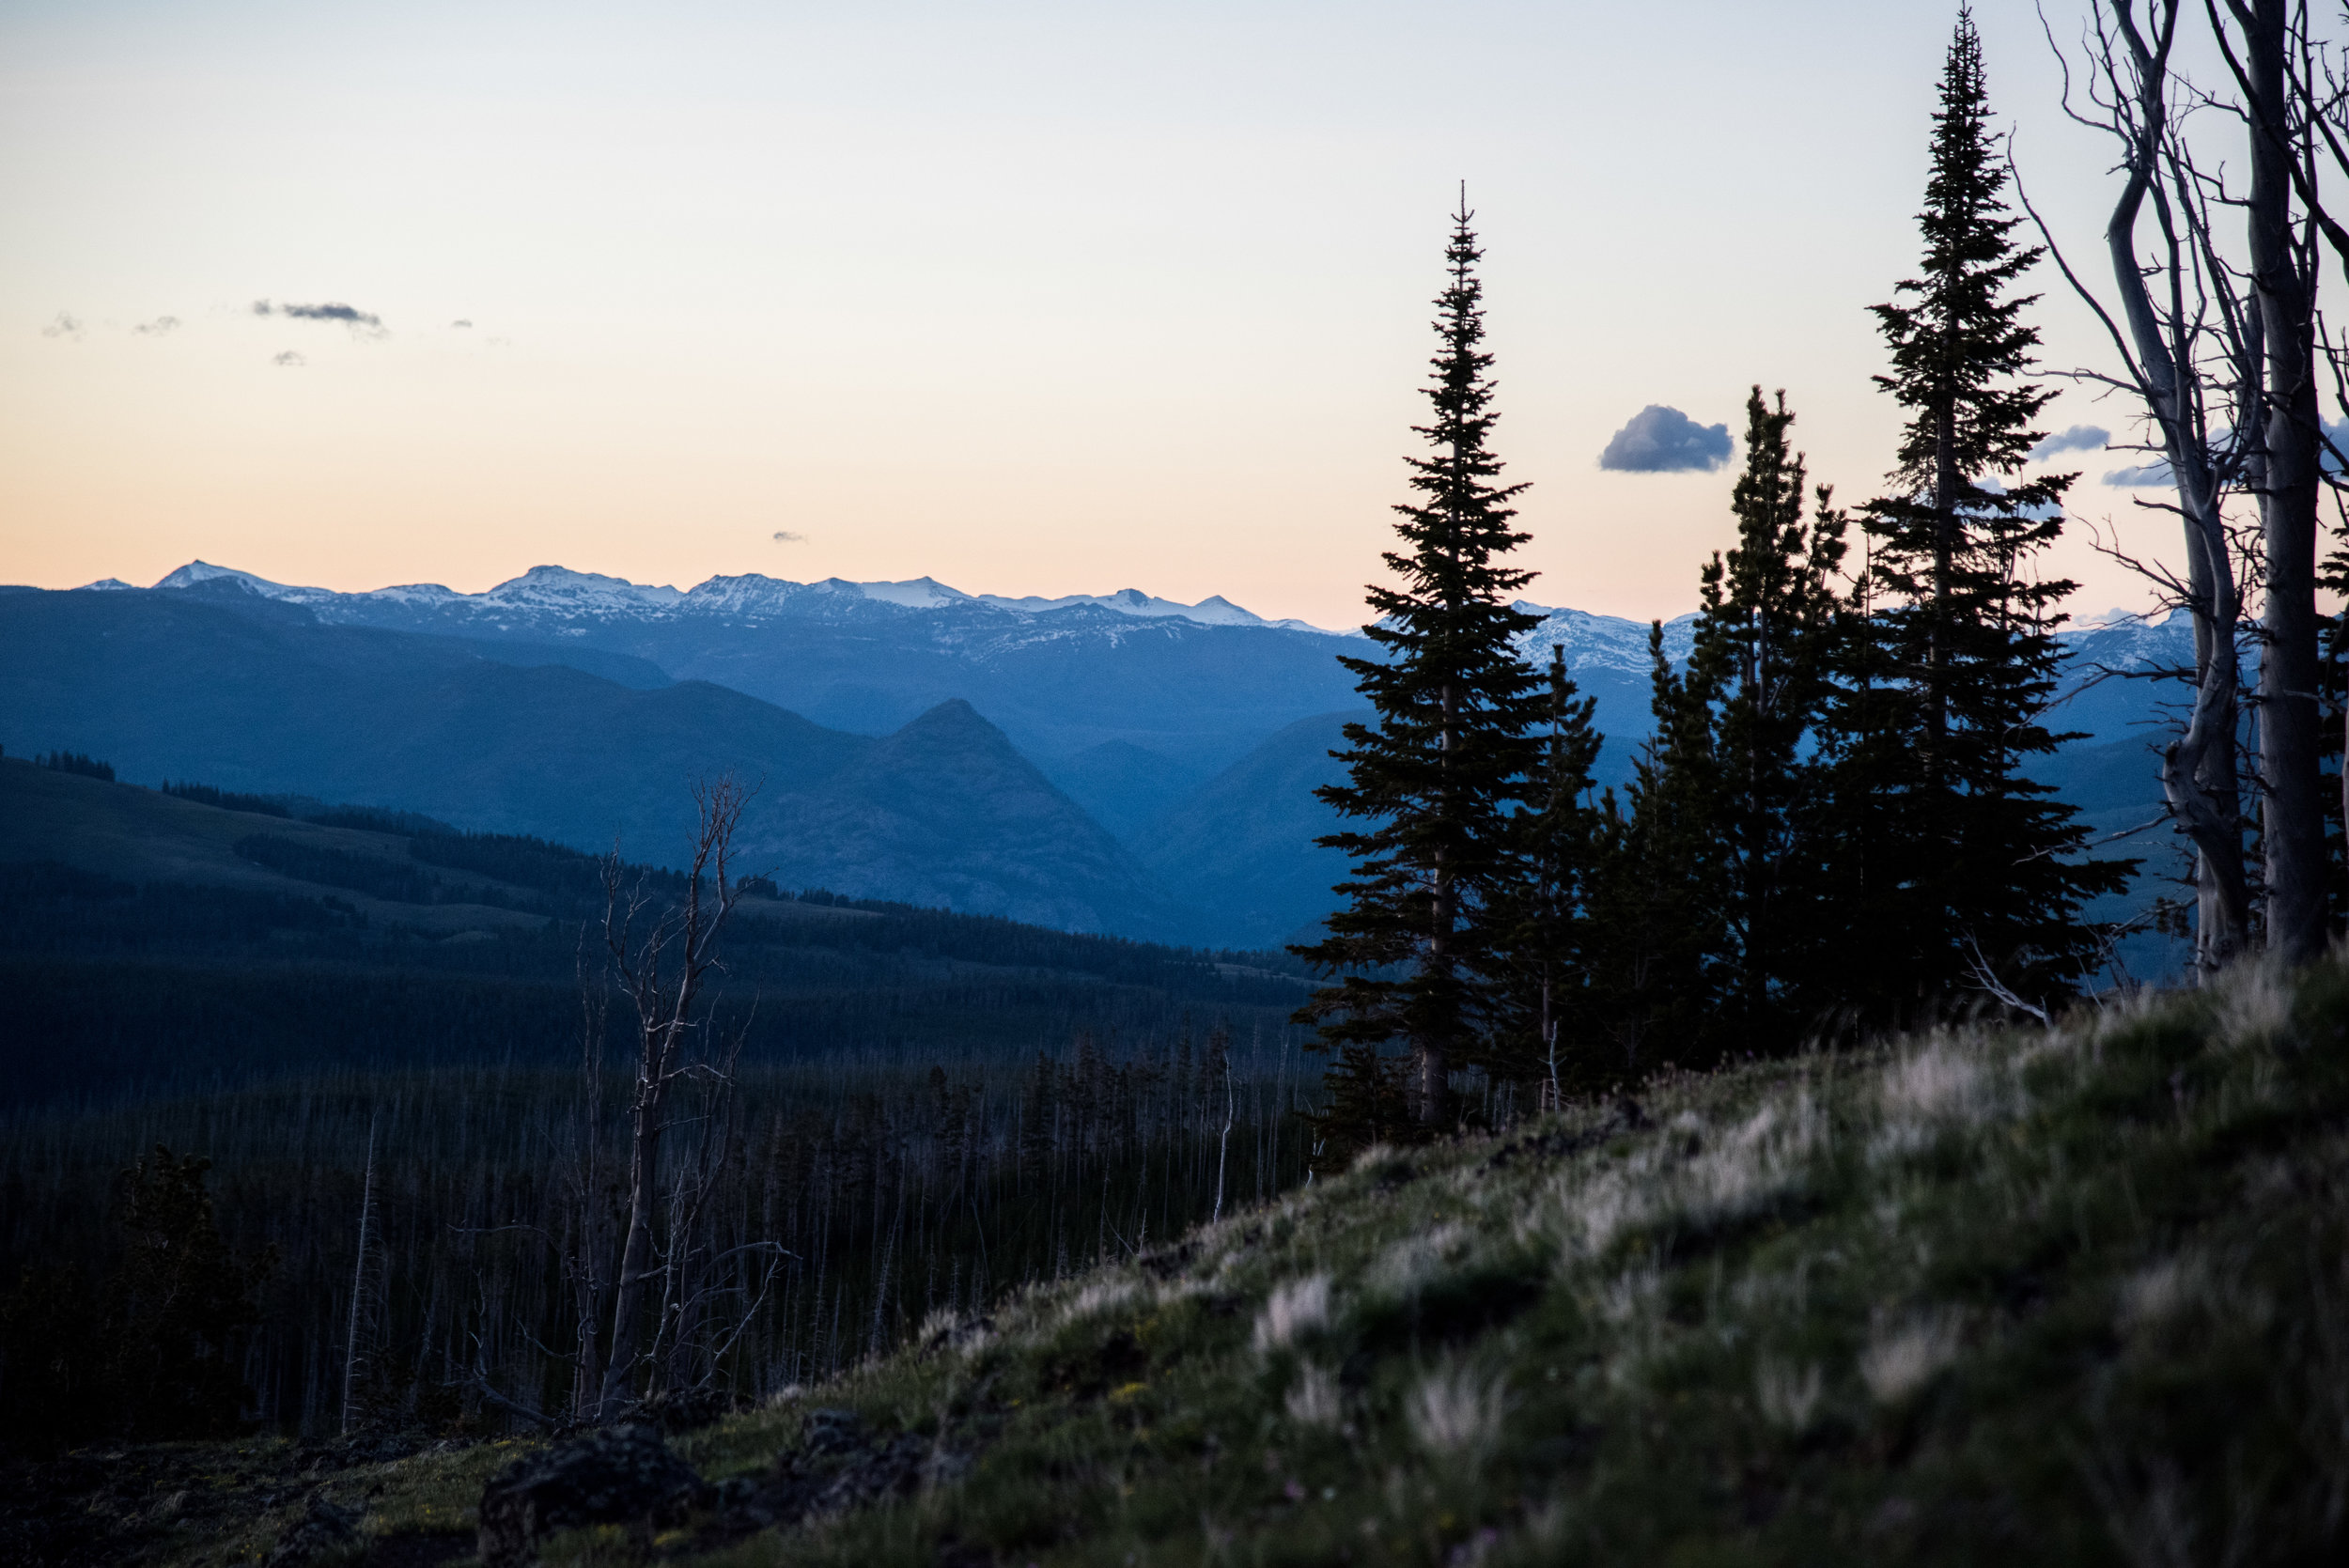 The view from a pullout on Dunraven's Pass in Yellowstone National Park.